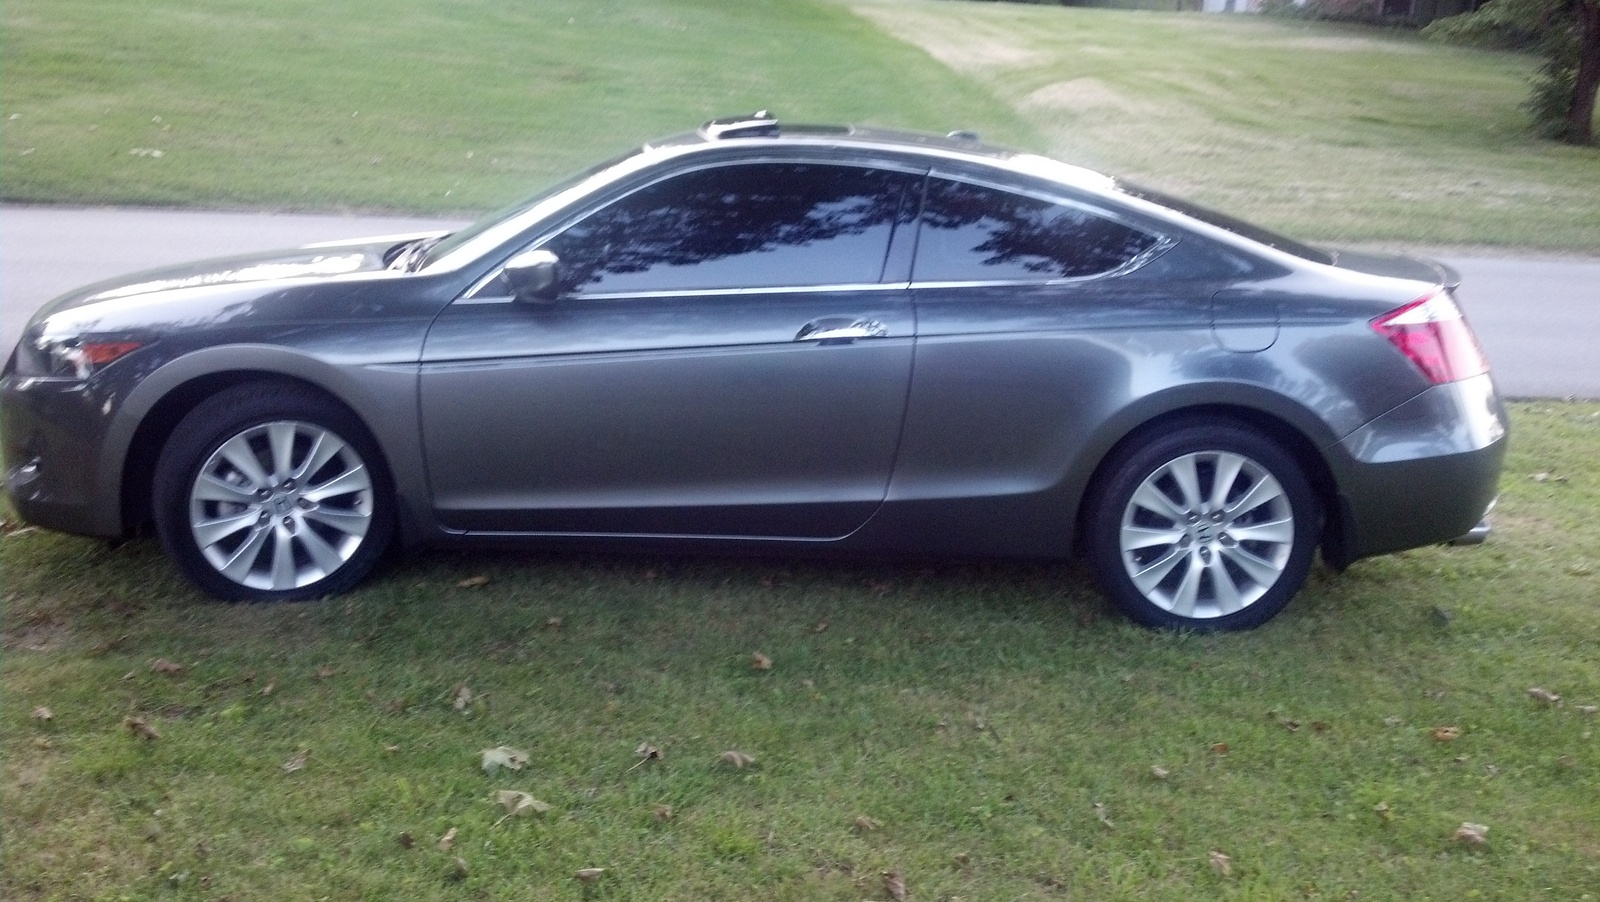 honda accord coupe ex l v6 picture view garage denise owns this honda